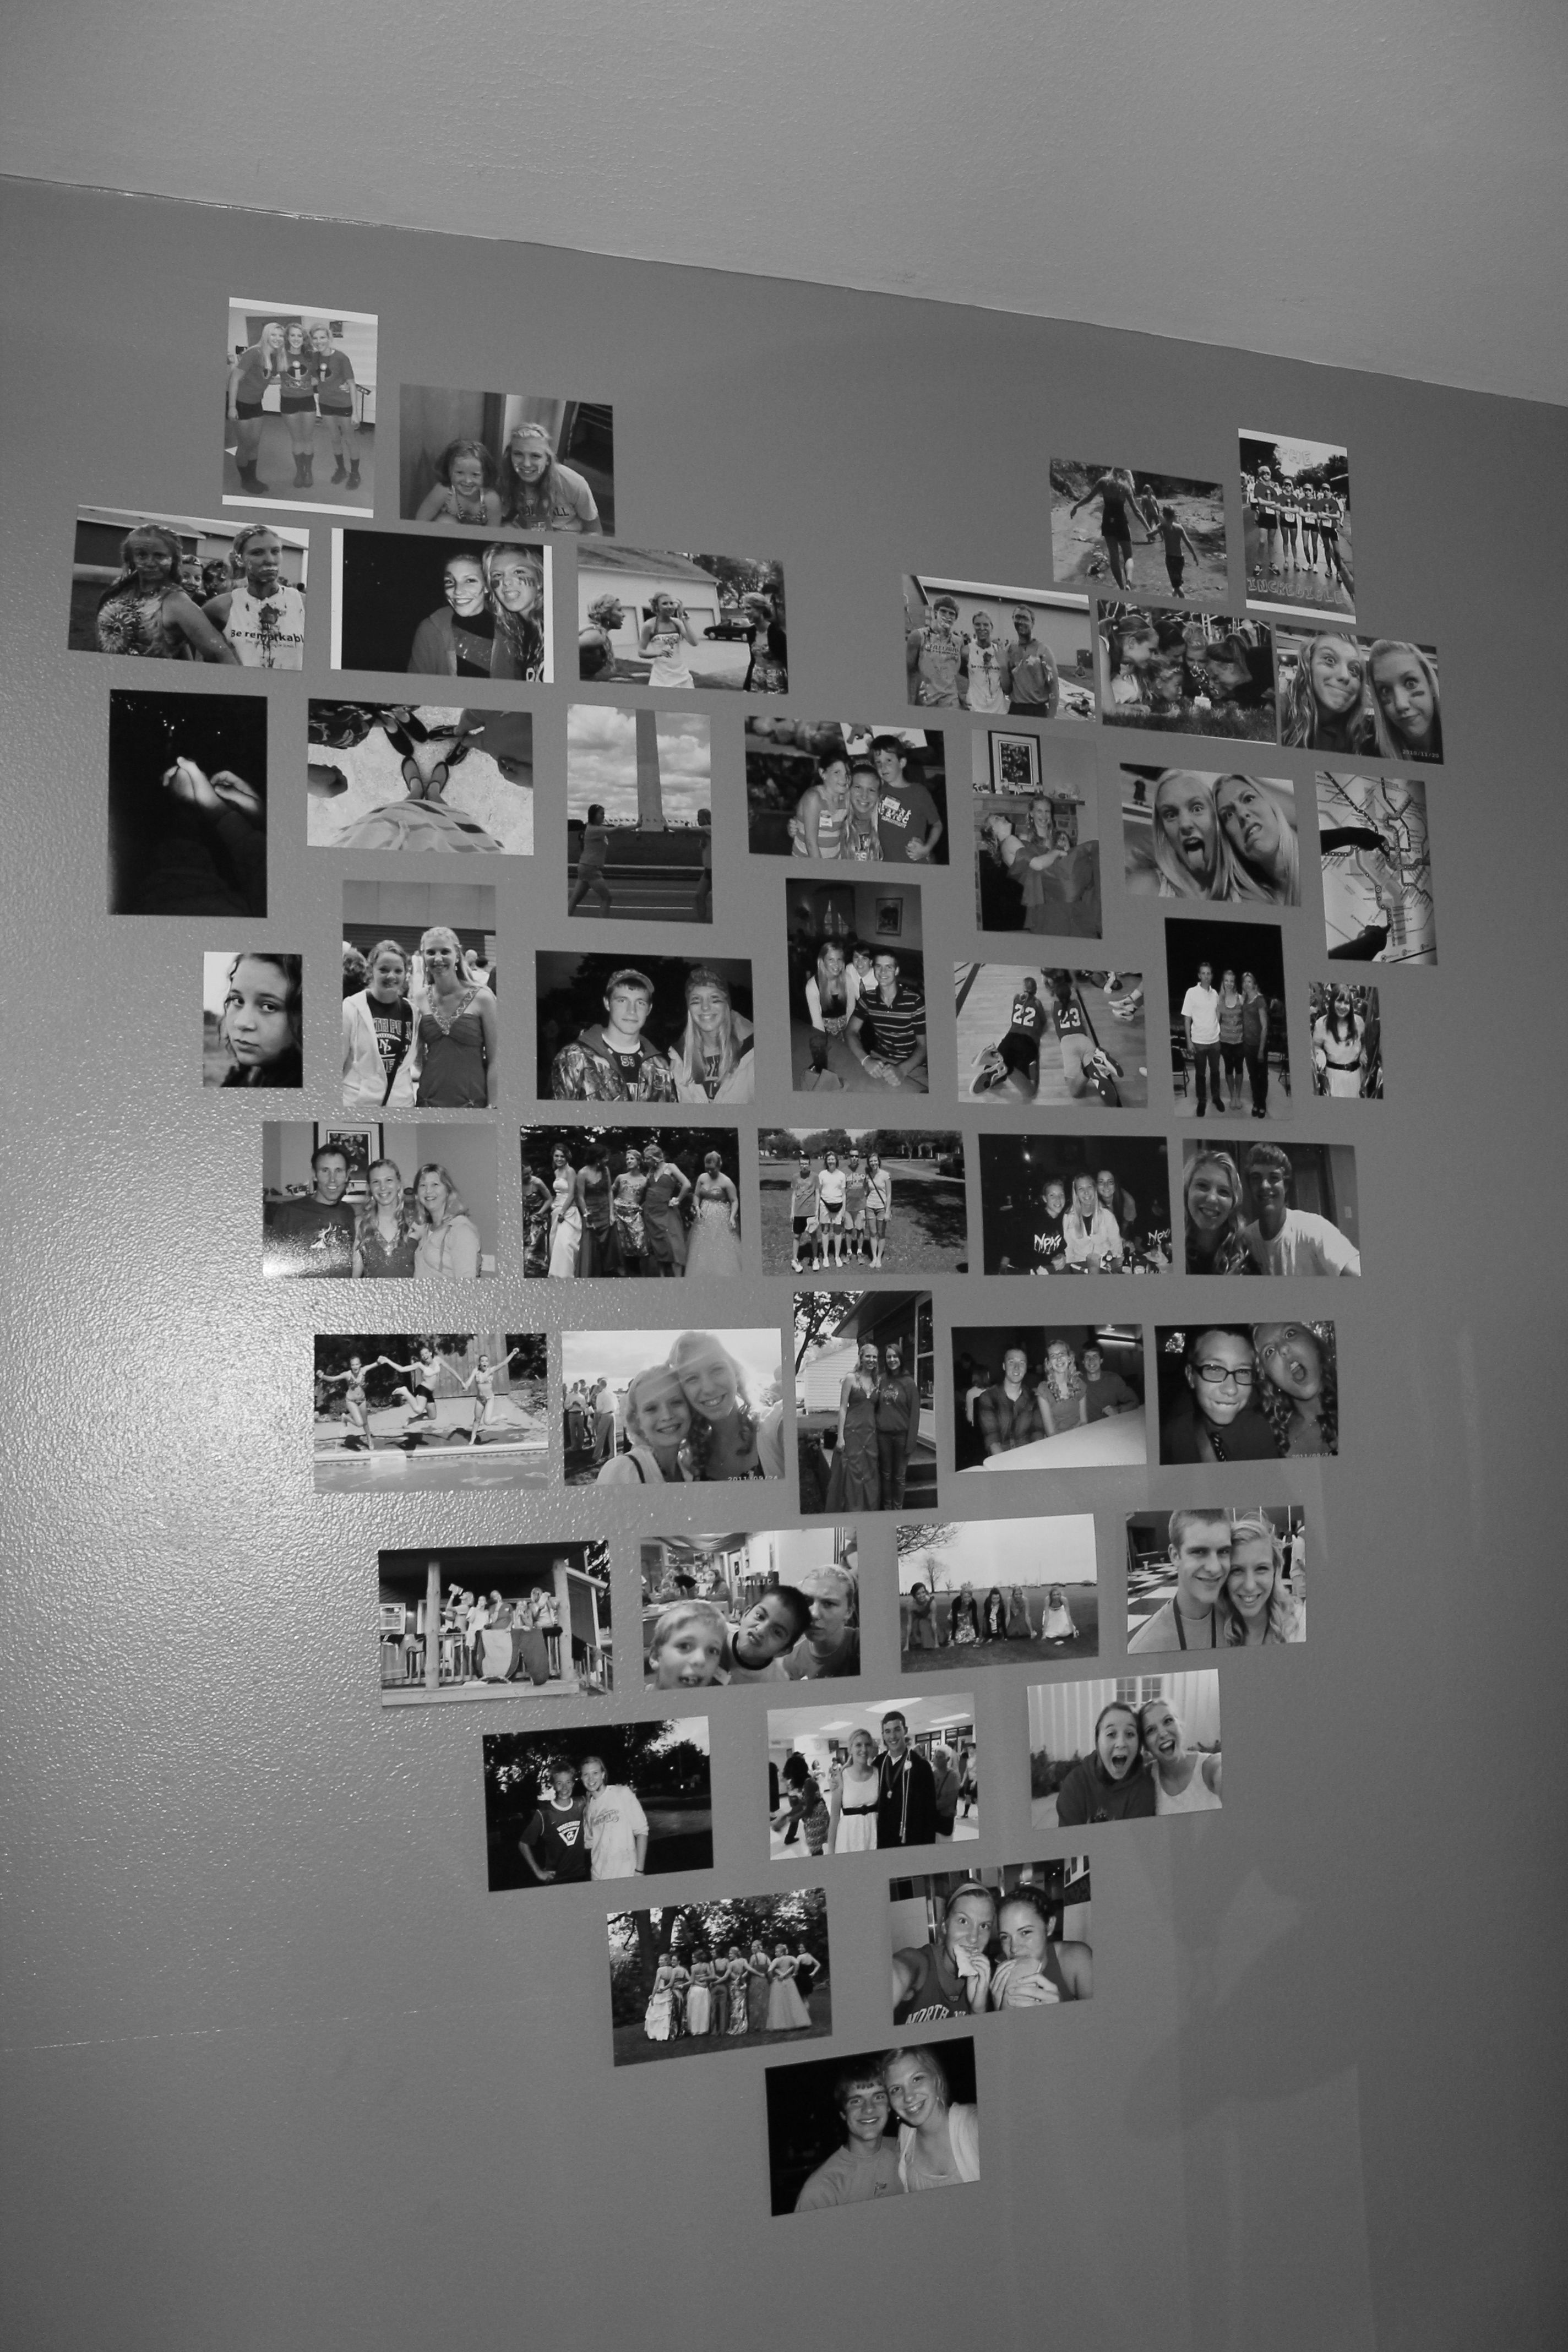 Put Picture In Heart Shape : picture, heart, shape, Print, Pictures, Heart, Shape, Decor,, Wall,